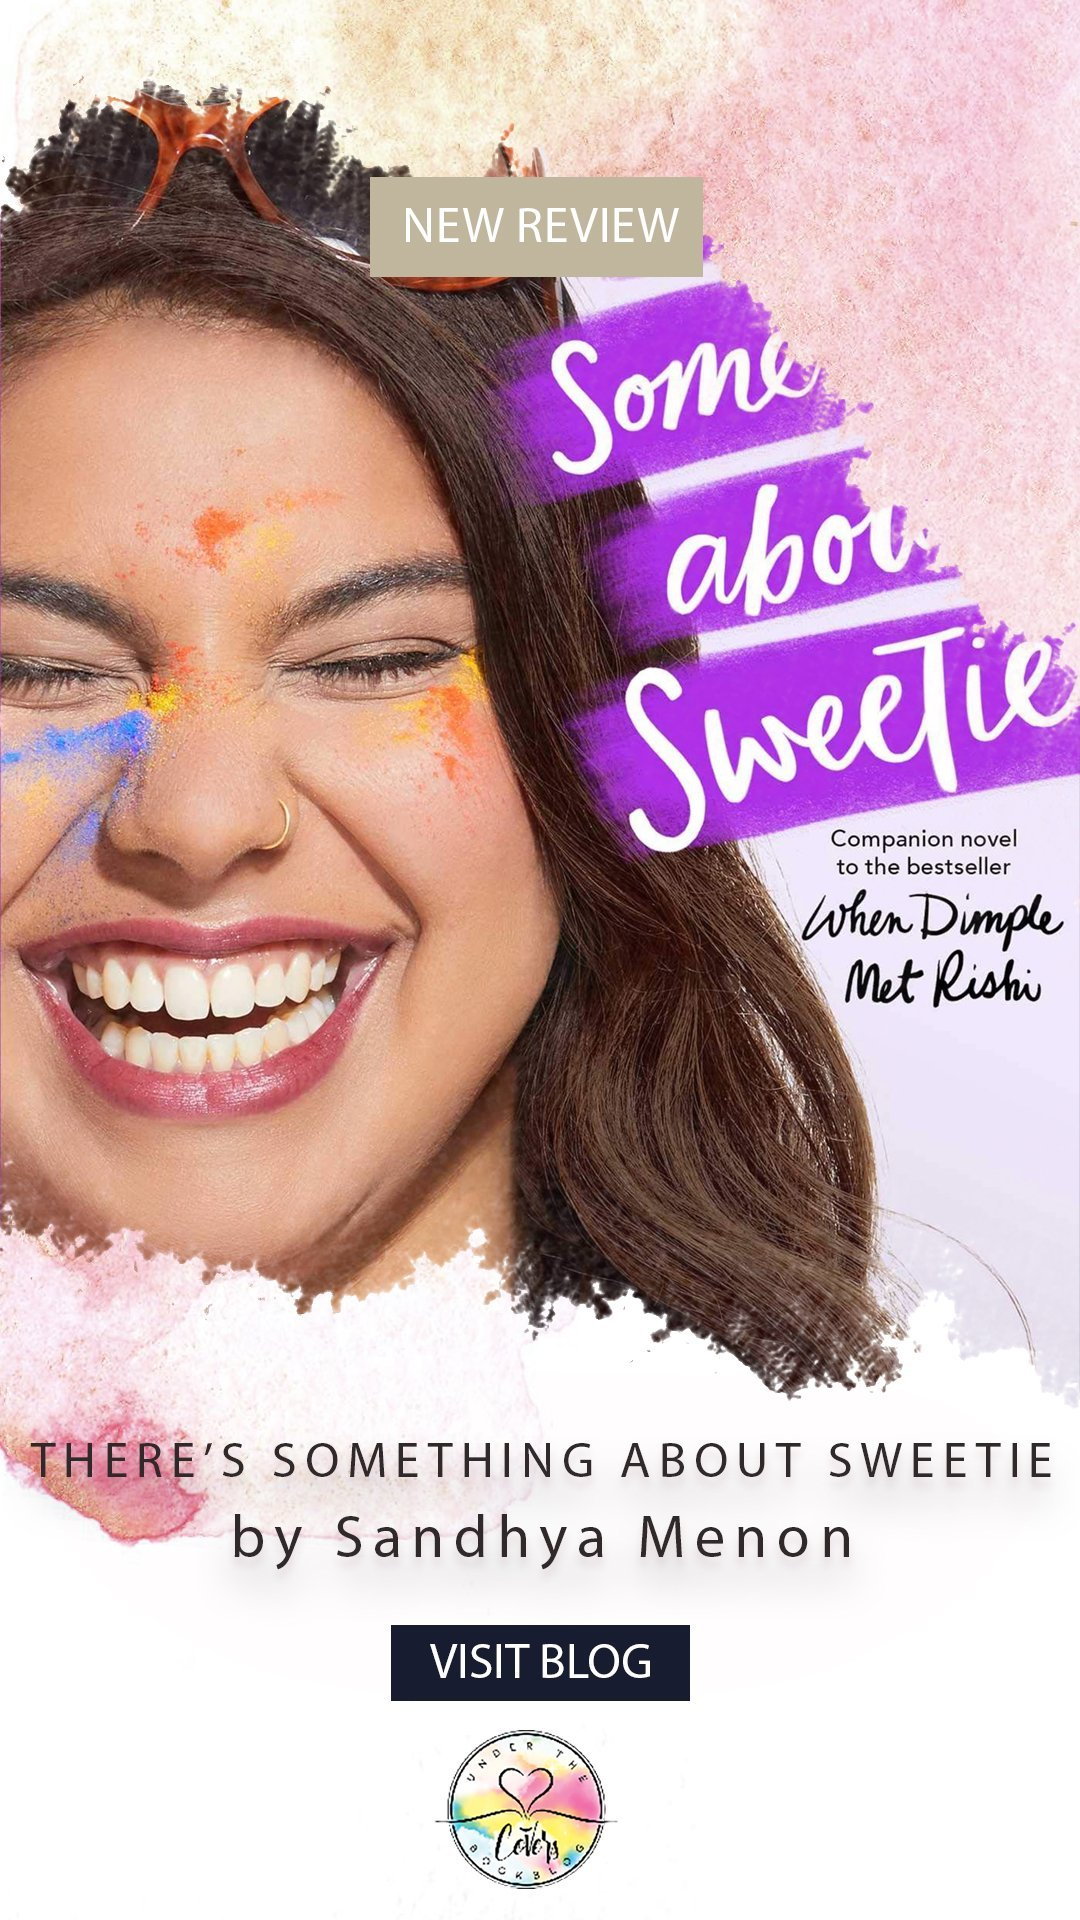 ARC Review: There's Something About Sweetie by Sandhya Menon